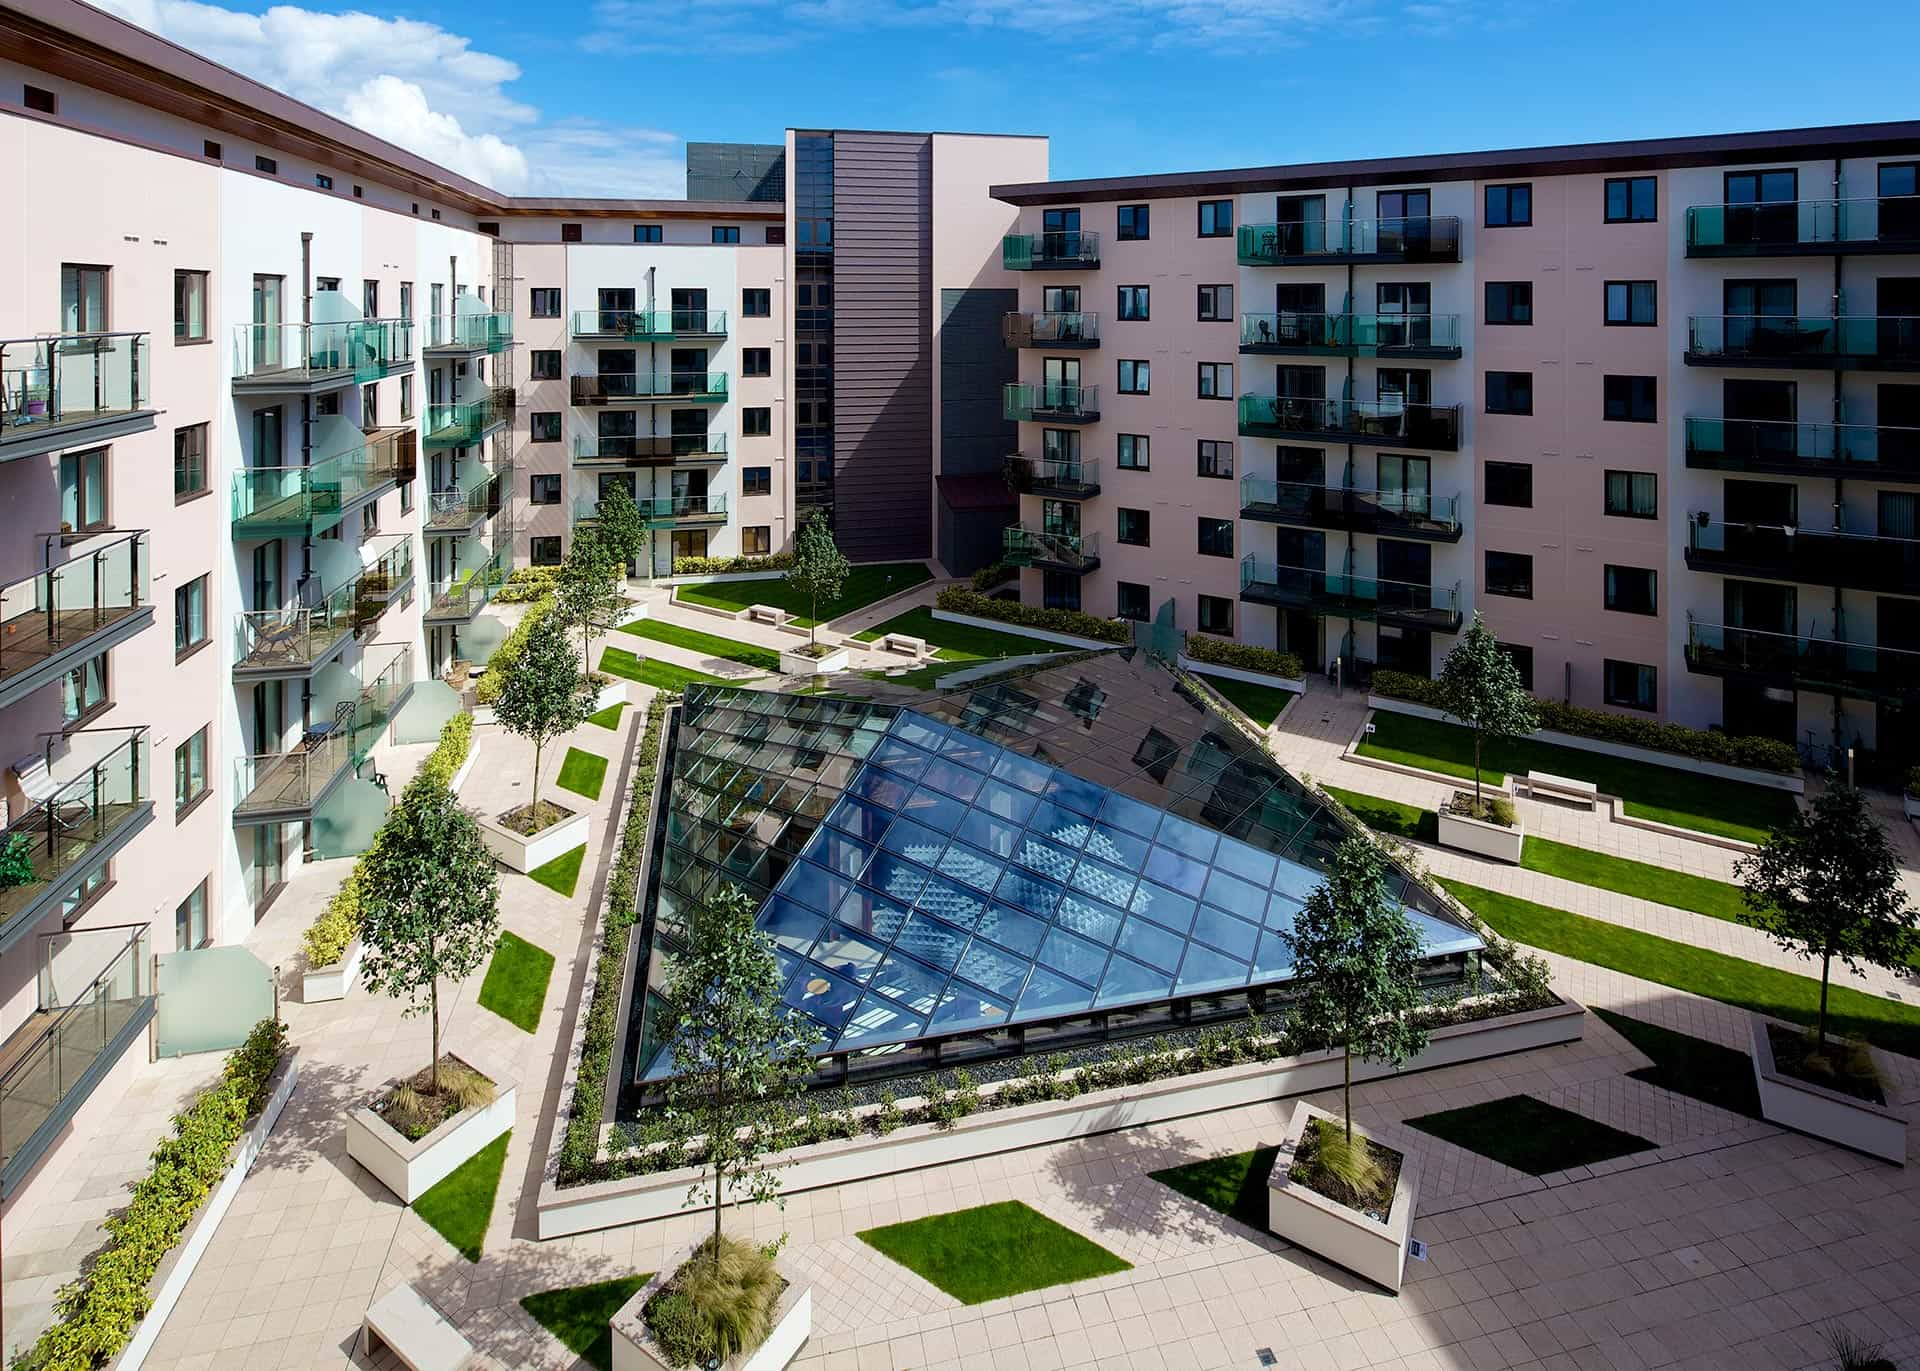 The shared courtyard at Castle Quay apartments, St Helier